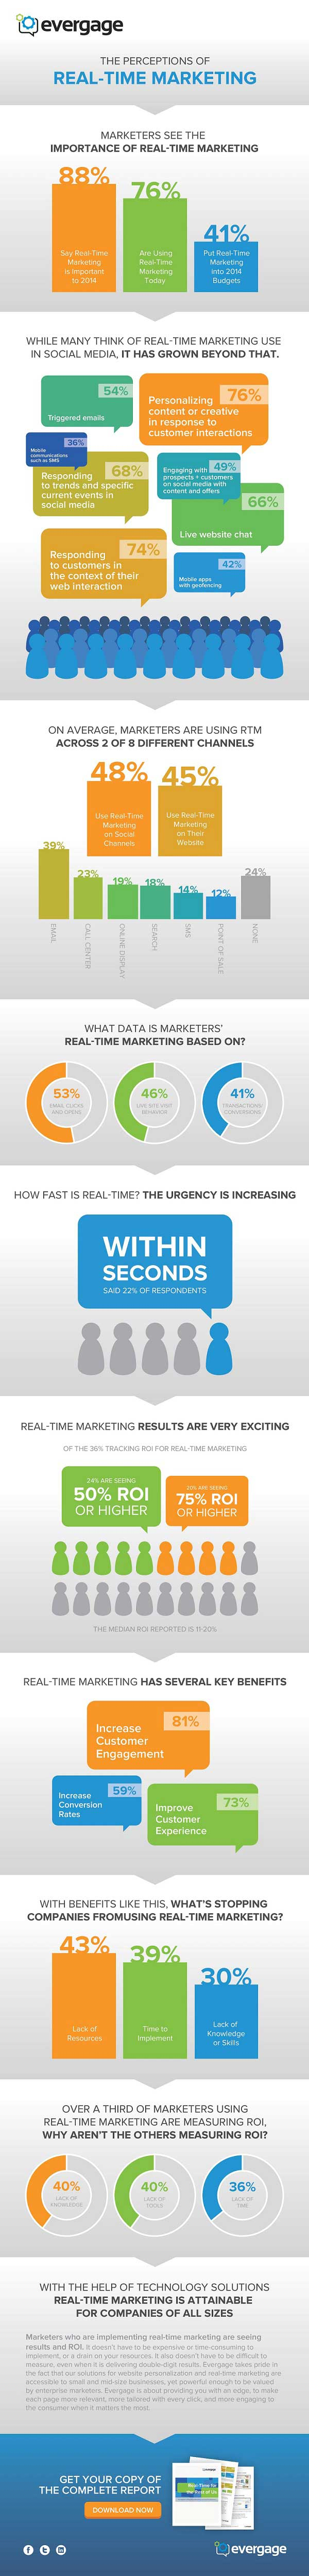 Marketers' Perceptions of Real-Time Marketing [Infographic]